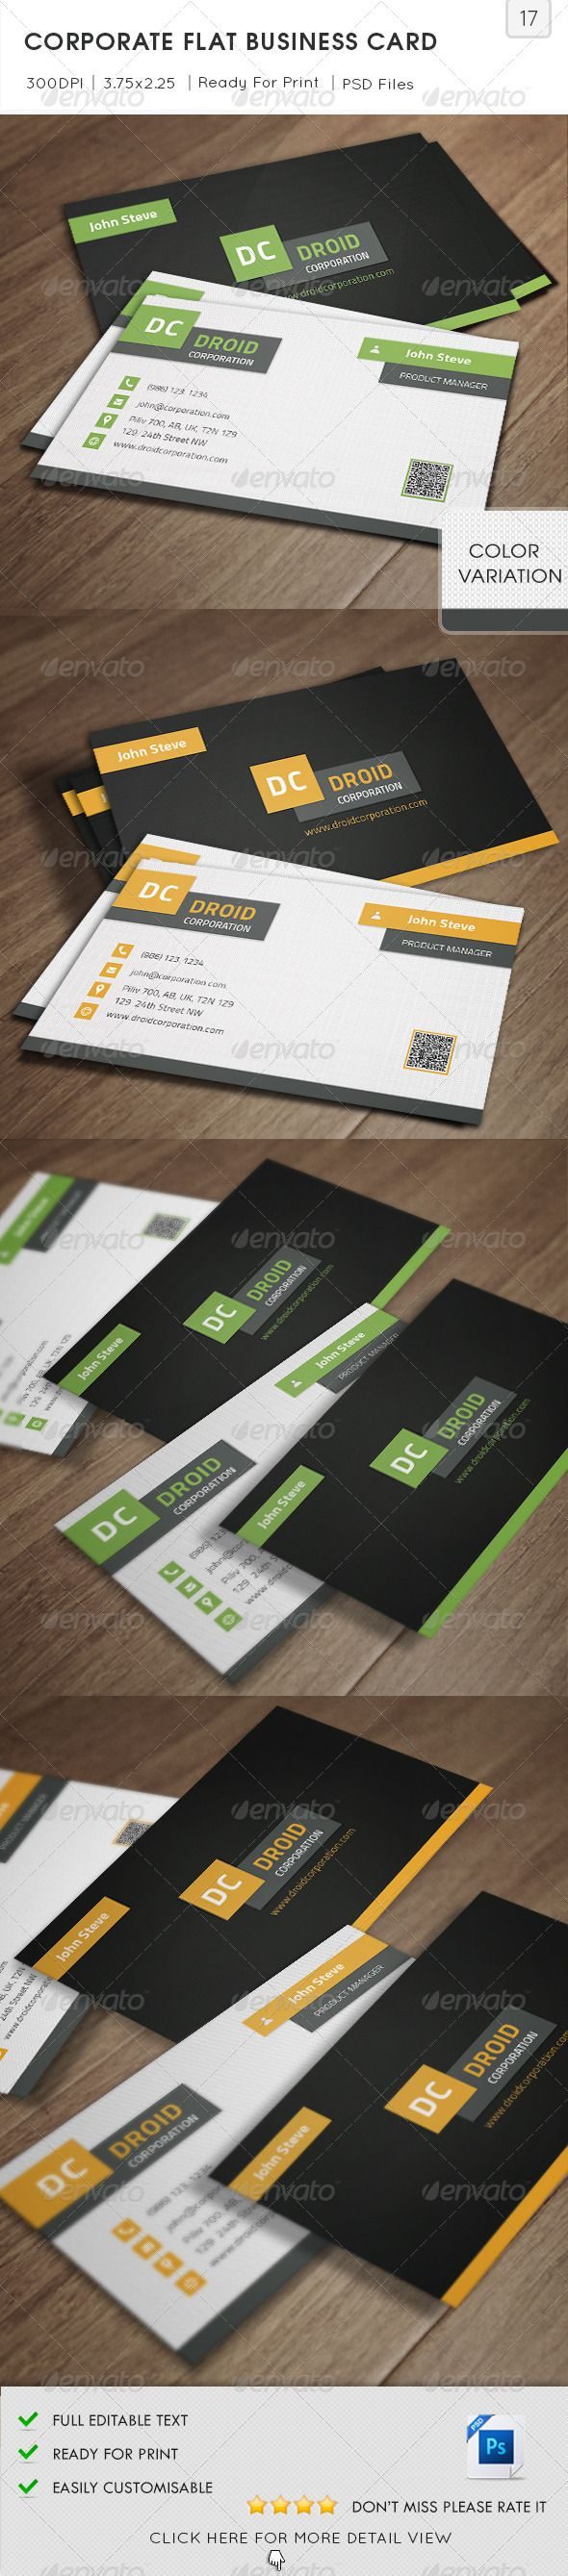 Corporate Flat Business Card v17  #GraphicRiver         Corporate Flat Business Card is especially for a Professional or Corporation and any other Industry type of Business. 2 Sided Business Card easy to modify.   Detail     Fully Layered PSD files  Fully Customizable and Editable  CMYK Setting  300 DPI High Resolution  Bleed Size: 3.75×2.25 in (1/8 in bleeds) (95.25×57.15 mm)  Standard Cut Size: 3.5×2 in (89×51 mm)  2 Color Variation  Print Ready Format  Horizontal…